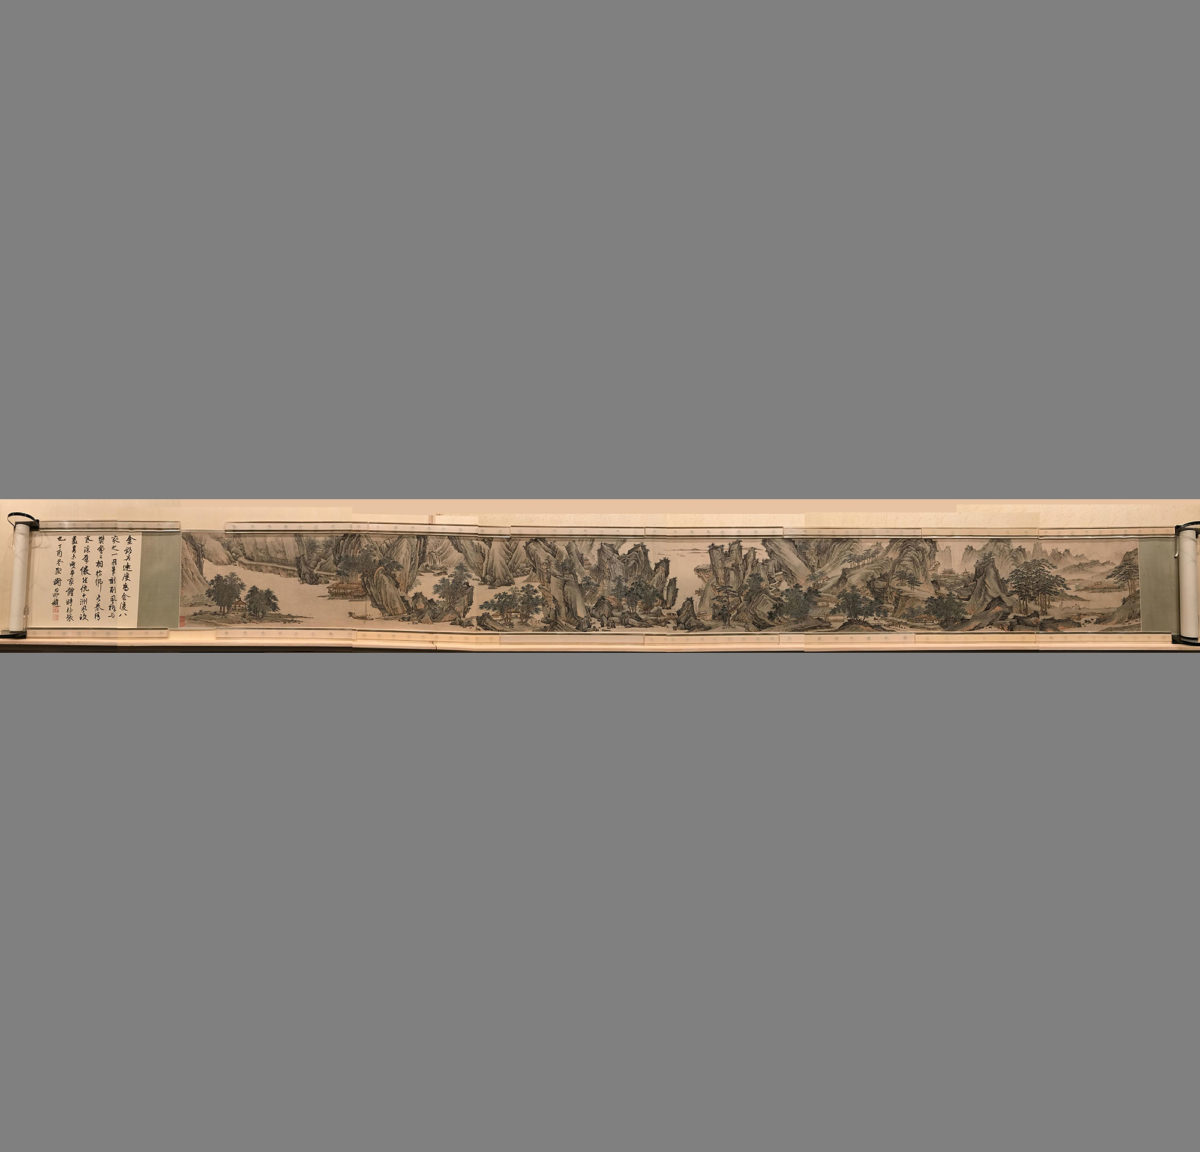 Painted paper scroll. Credit: Zhang Xudong Shanghai Museum